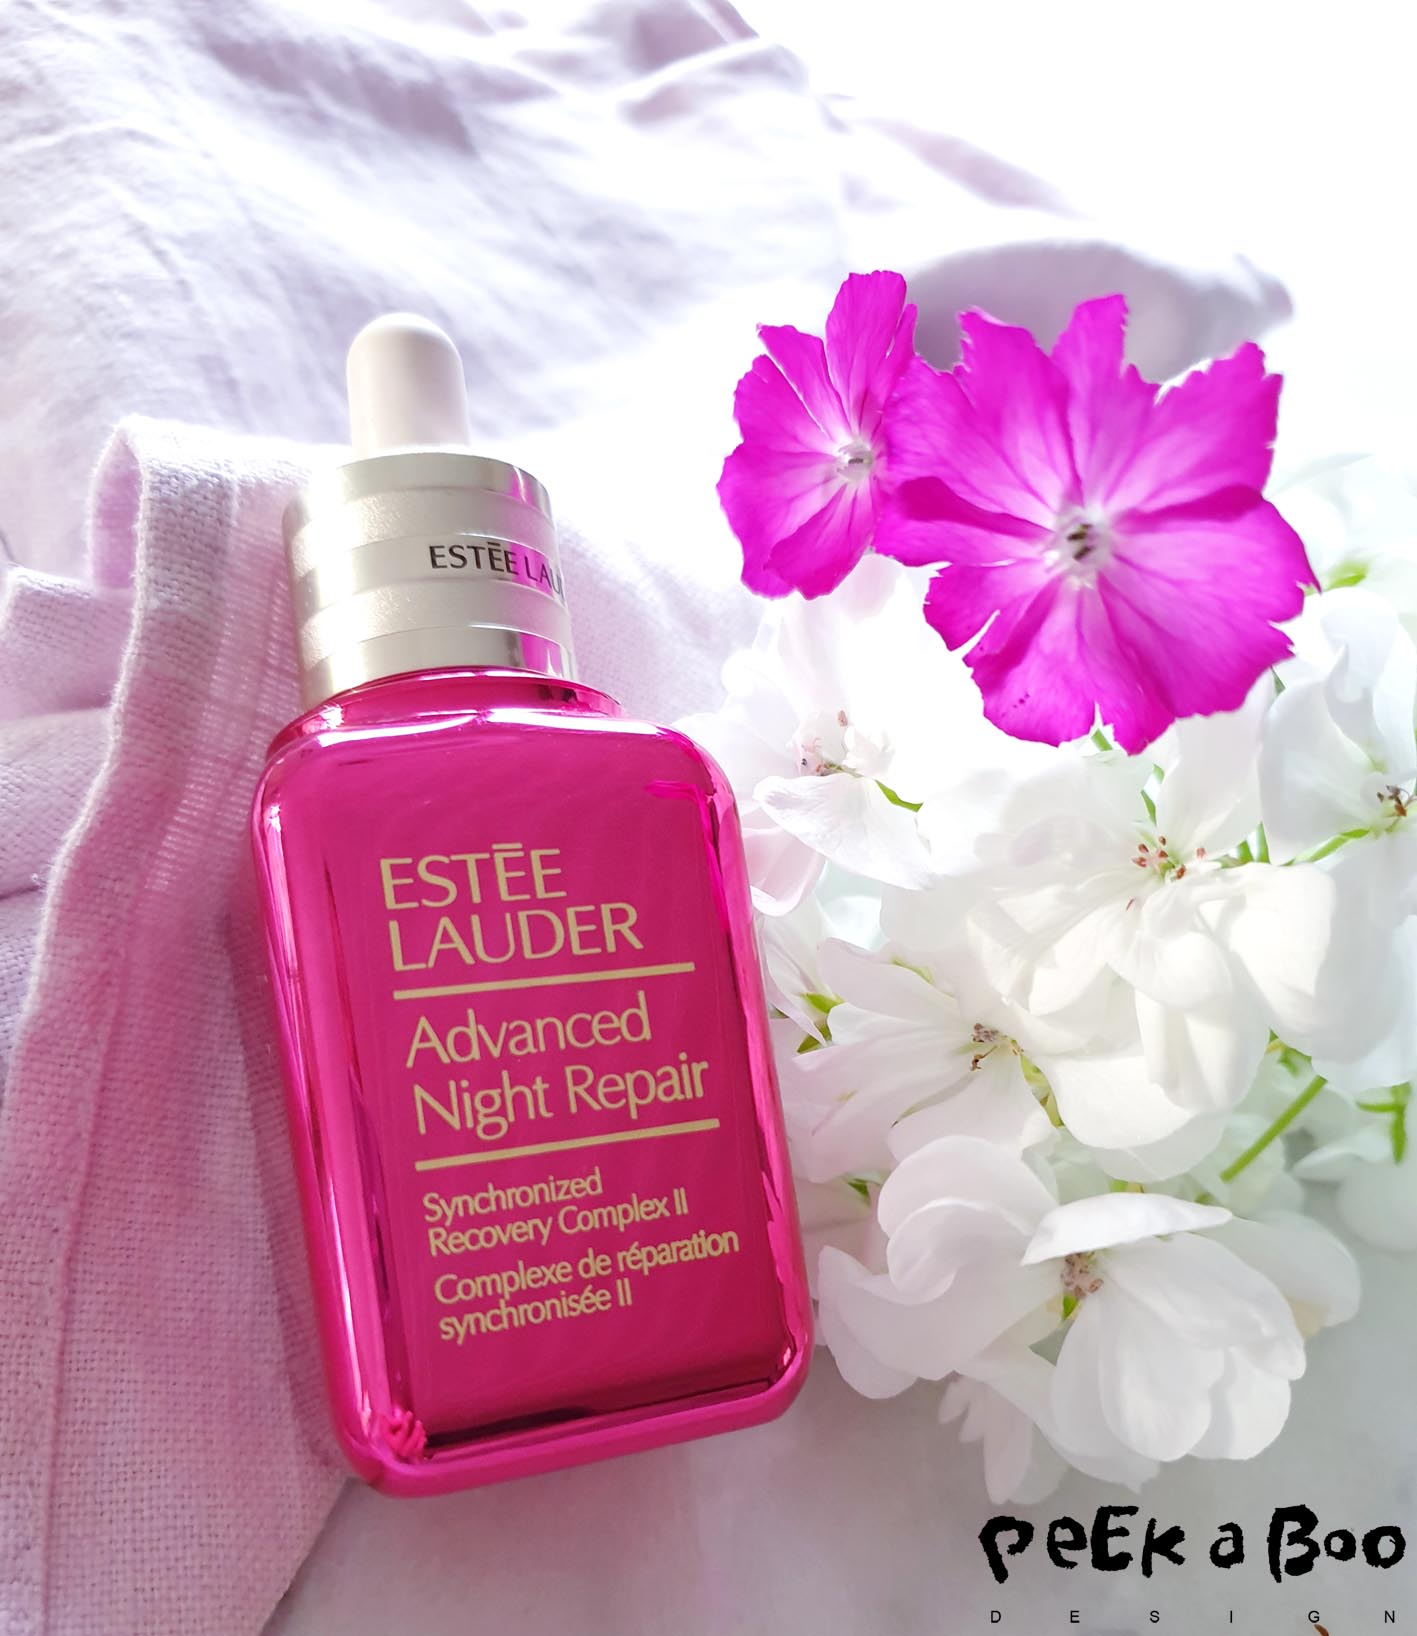 The advanced night repair is part of the Pink collection from Estée Lauder.